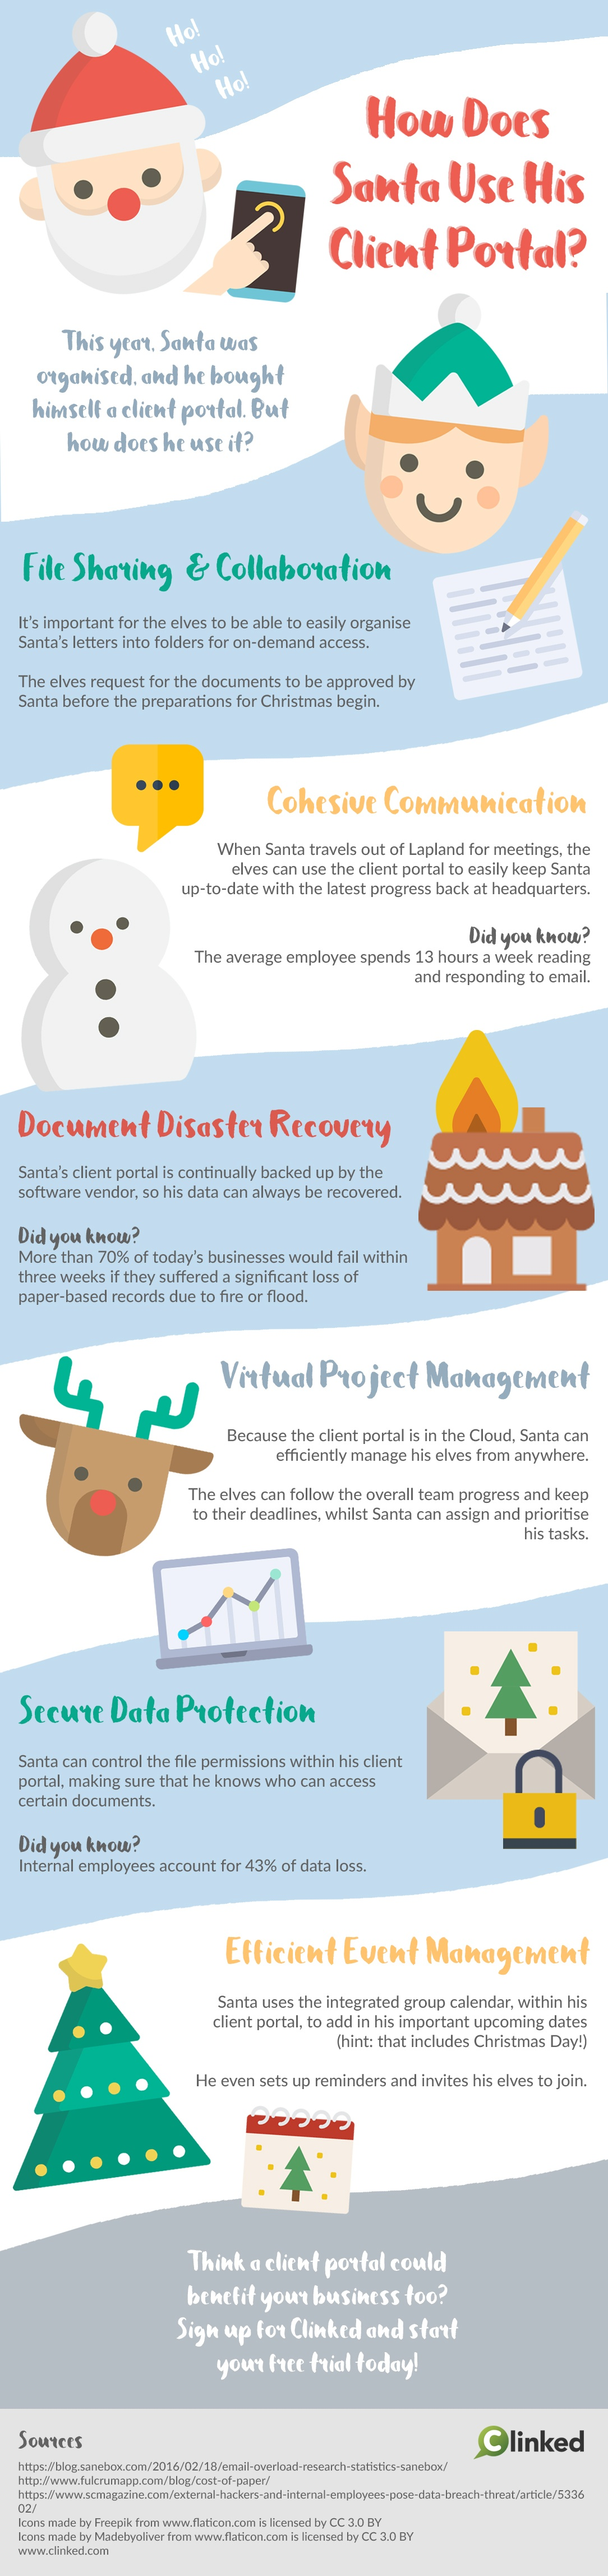 How Does Santa Use His Client Portal? [Infographic]